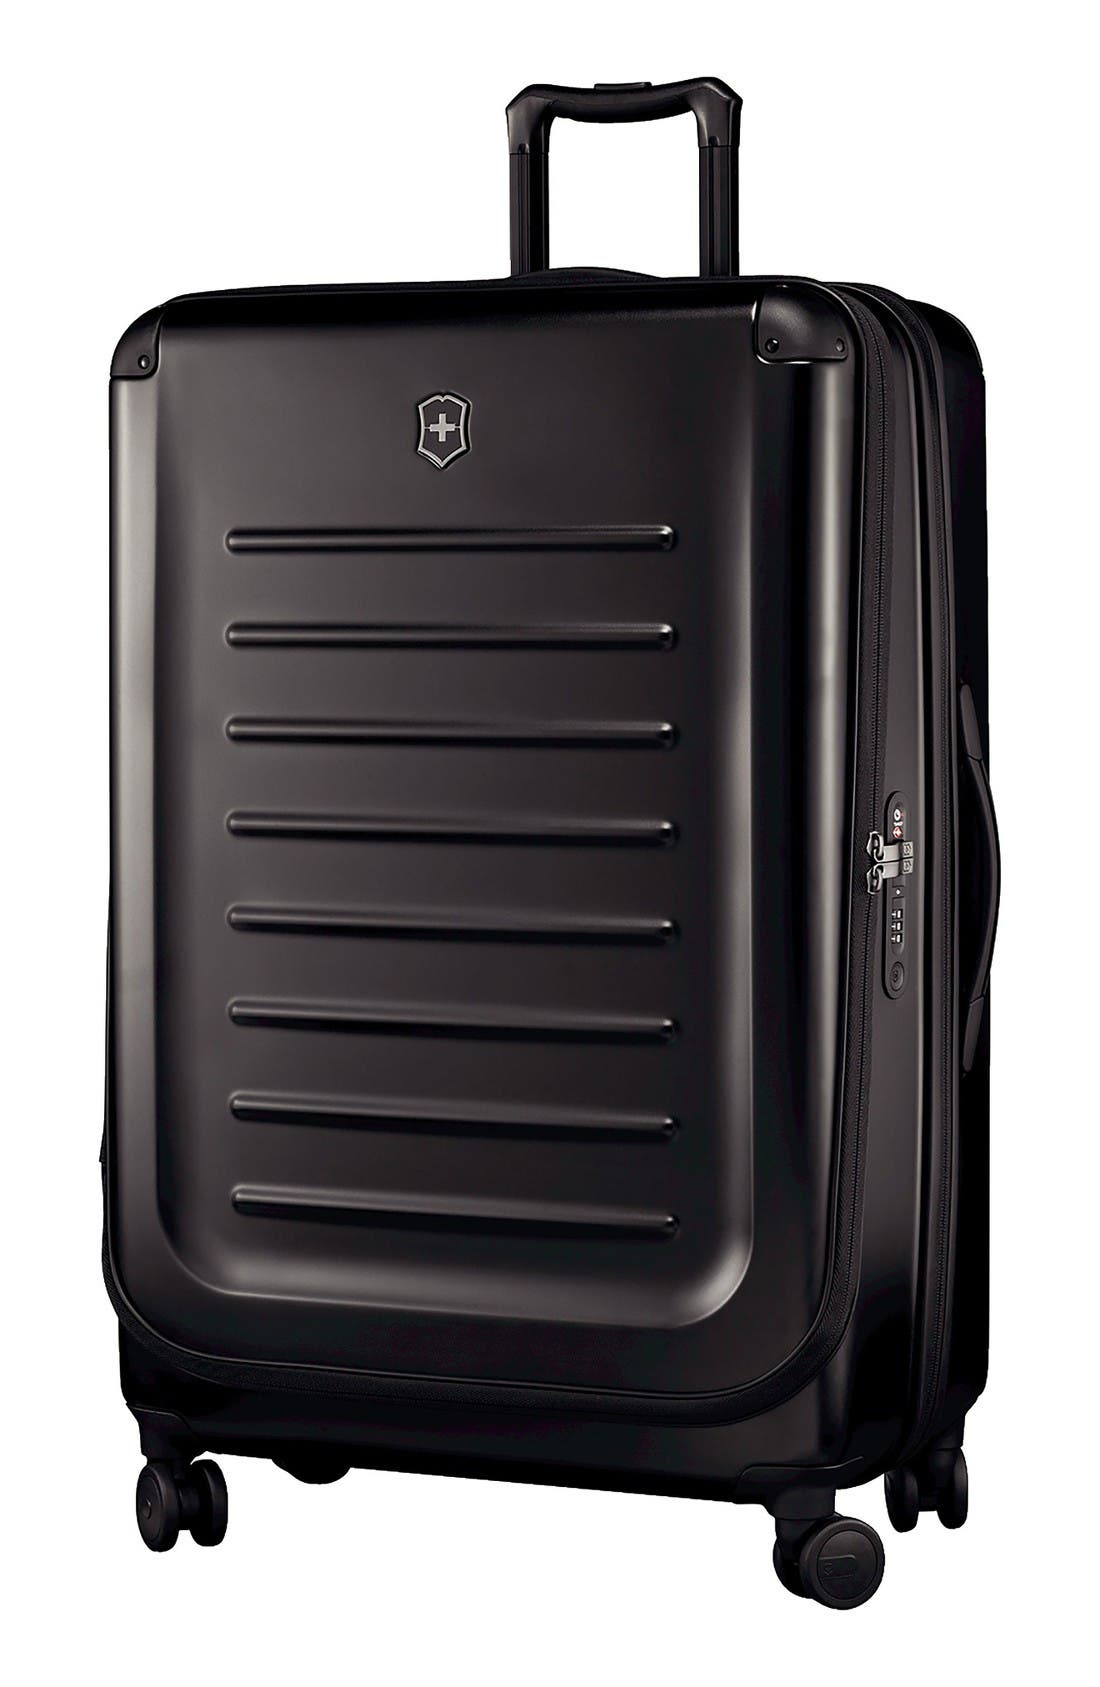 Spectra 2.0 32 Inch Hard Sided Rolling Travel Suitcase,                             Main thumbnail 1, color,                             Black